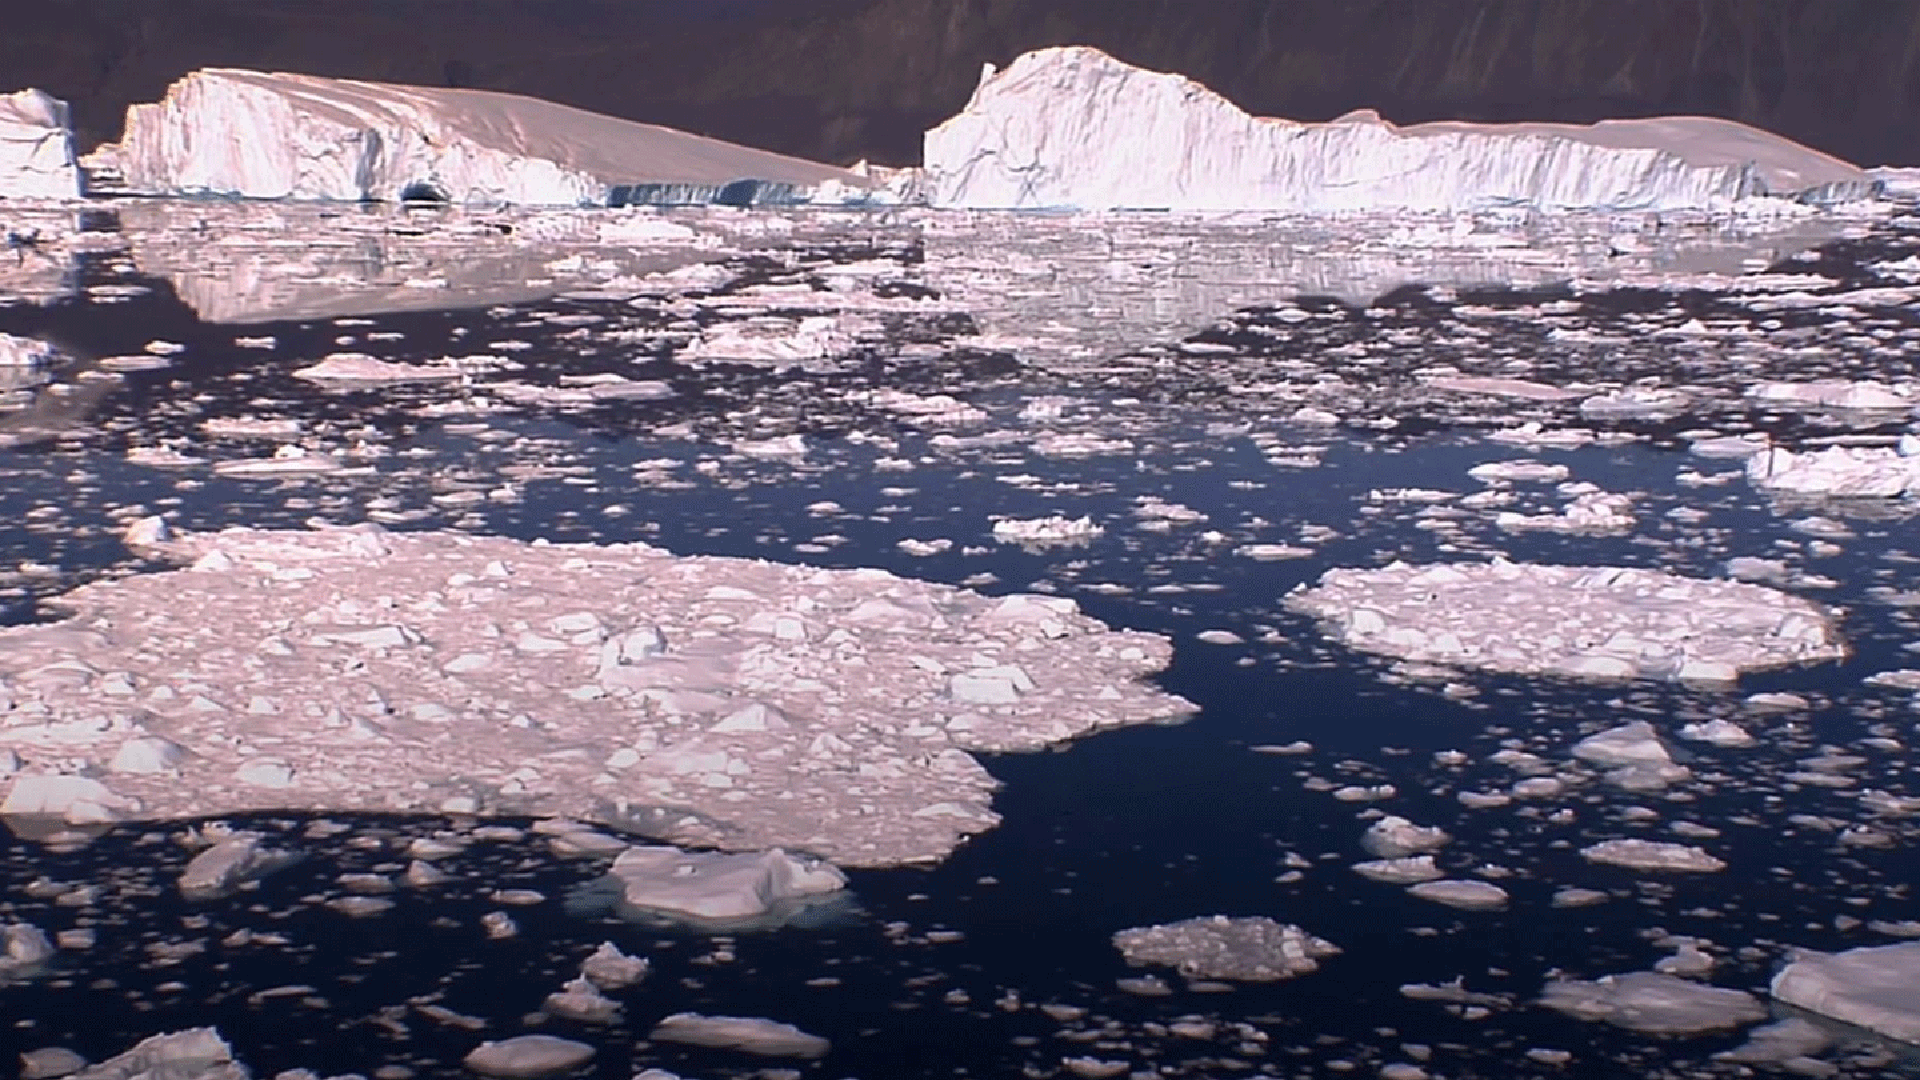 Ice caps melting and breaking apart in dark blue water.